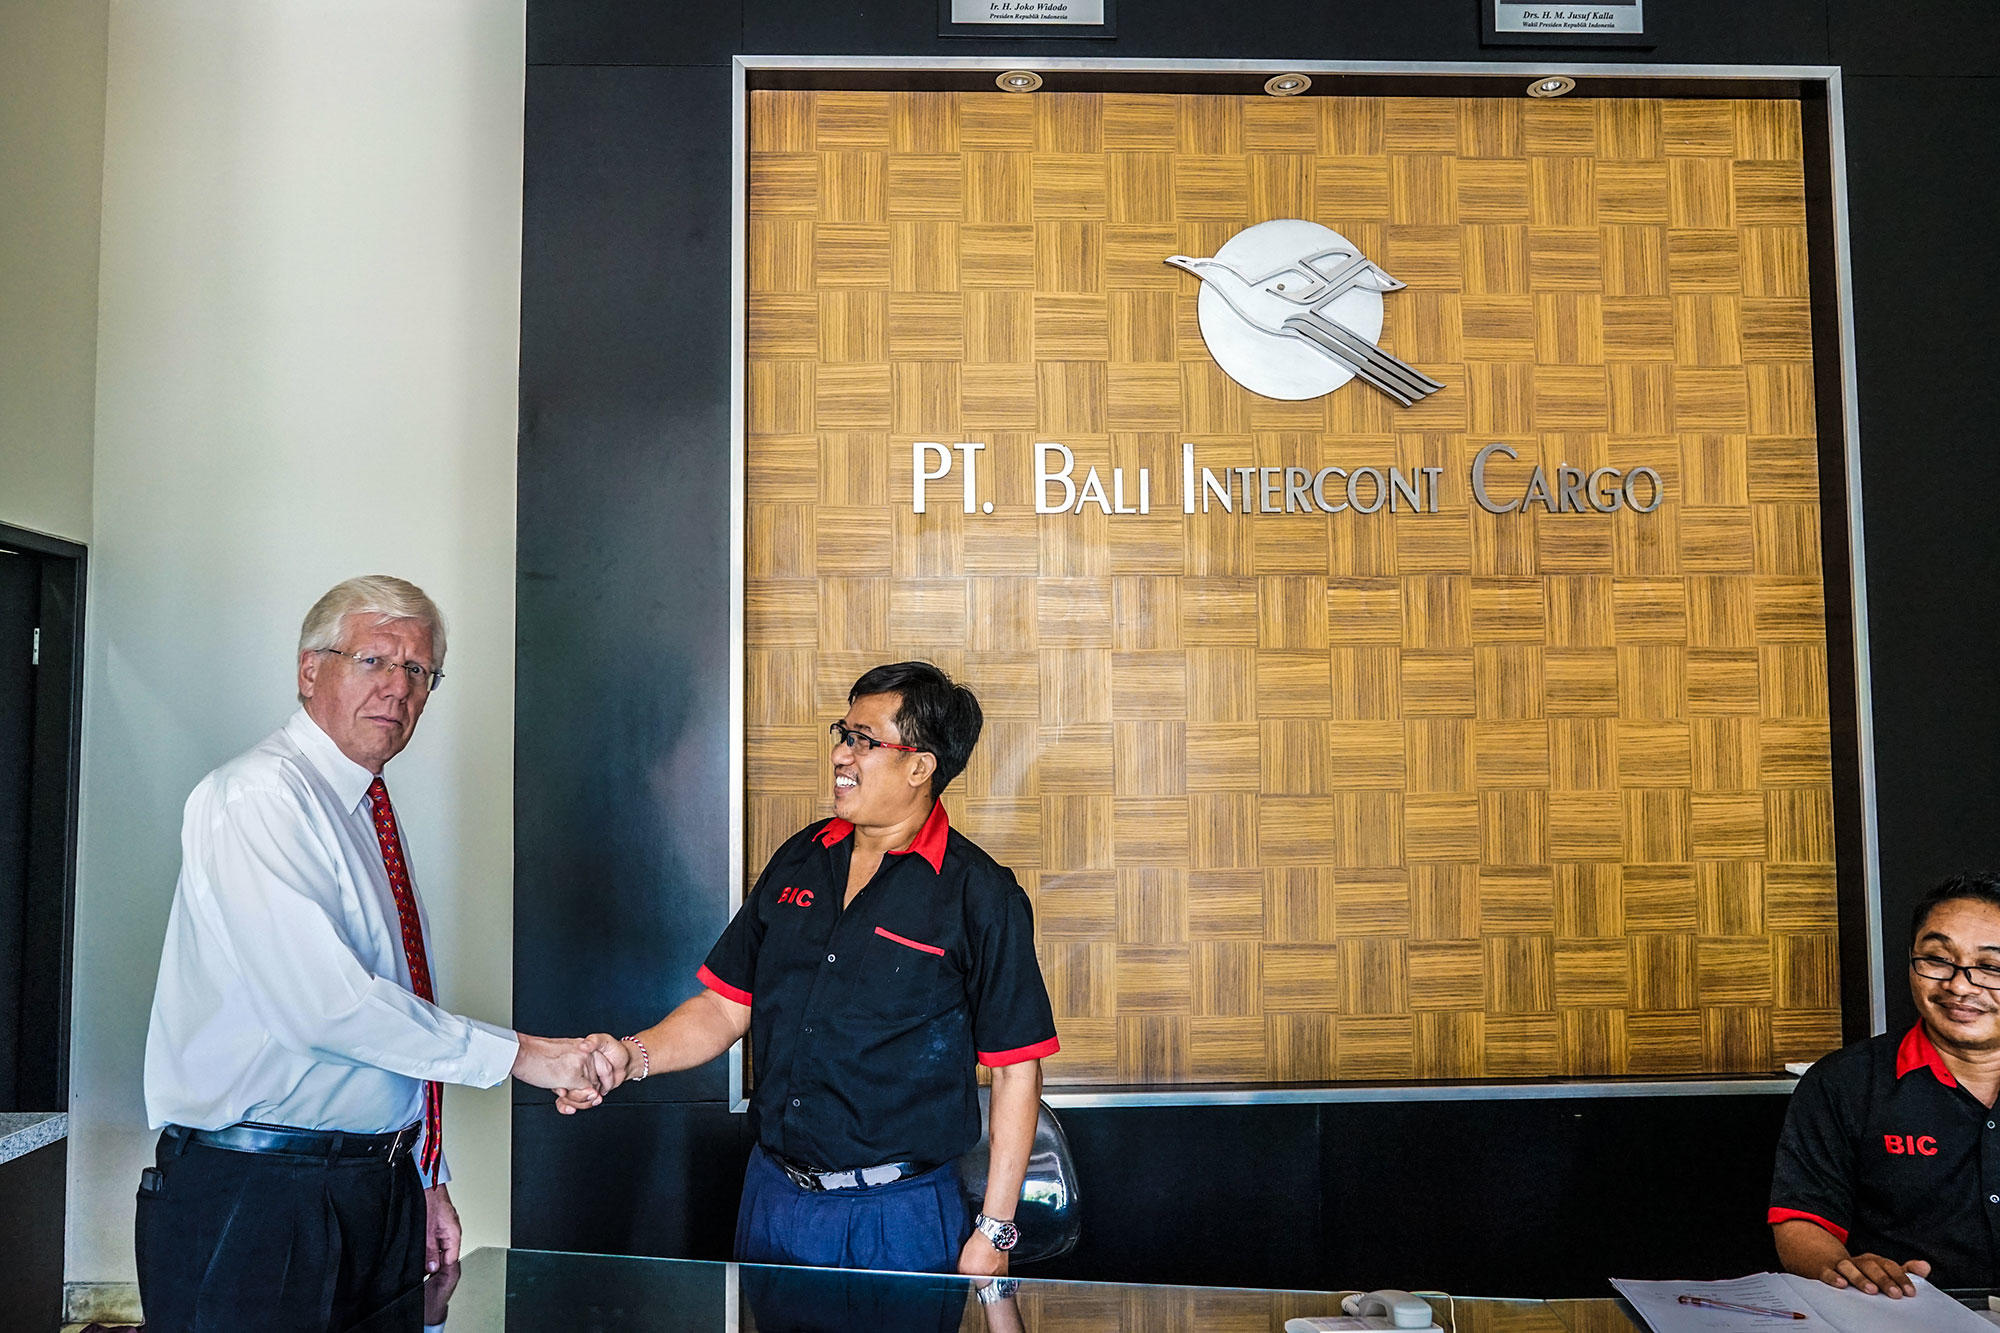 Welcome to Bali Intercont Cargo